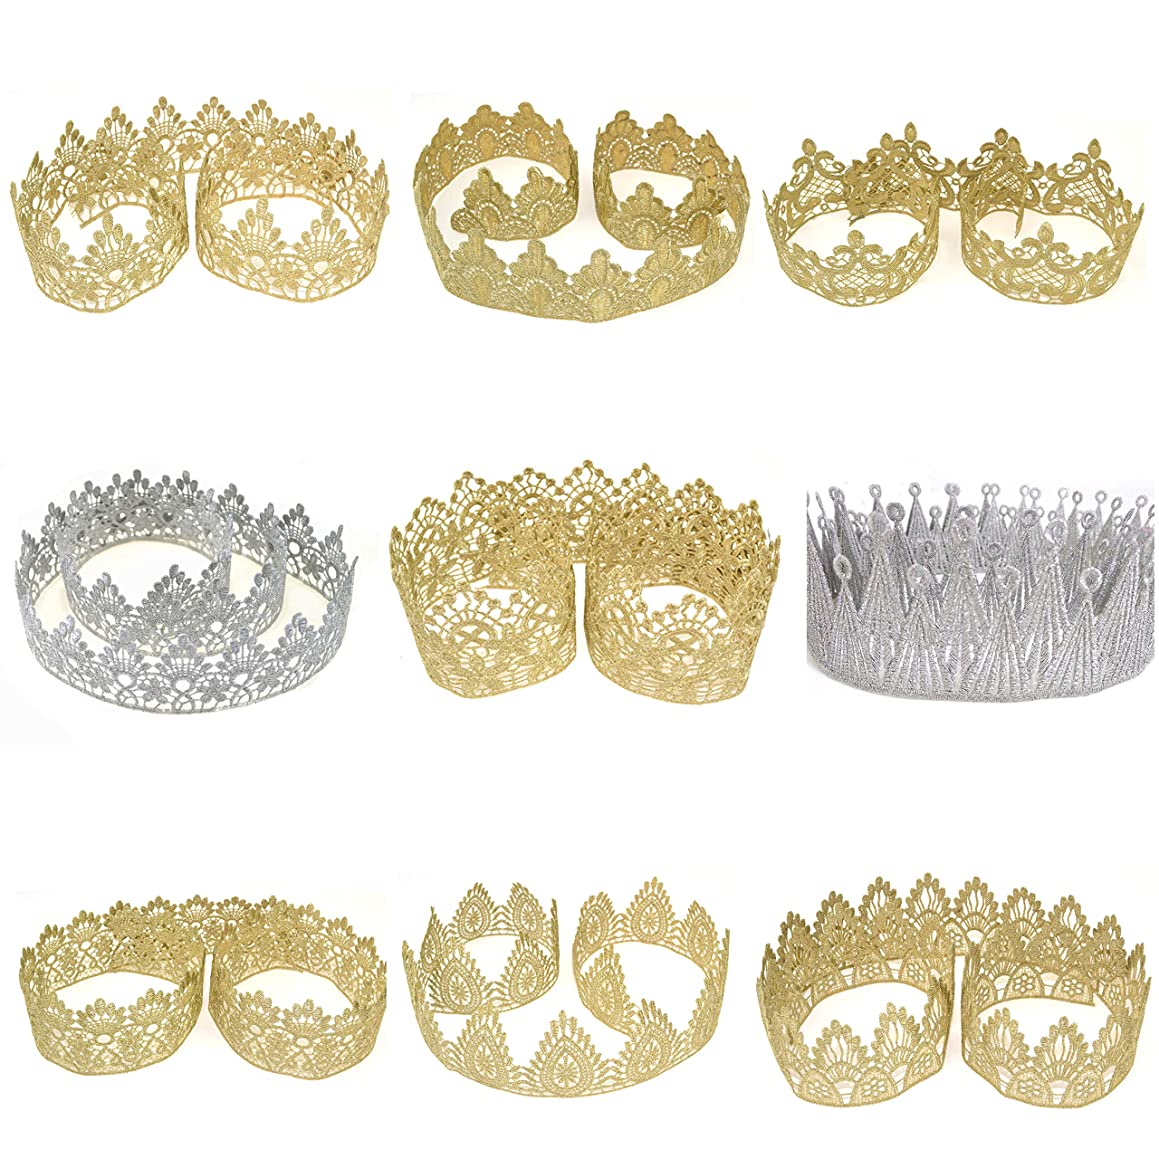 Star Quality Golden Crown Lace for Baby and Grown up DIY Craft Crown | Craft Lace for Princess, Prince and Doll's Crown (1 Yard, Glory Crown Lace)